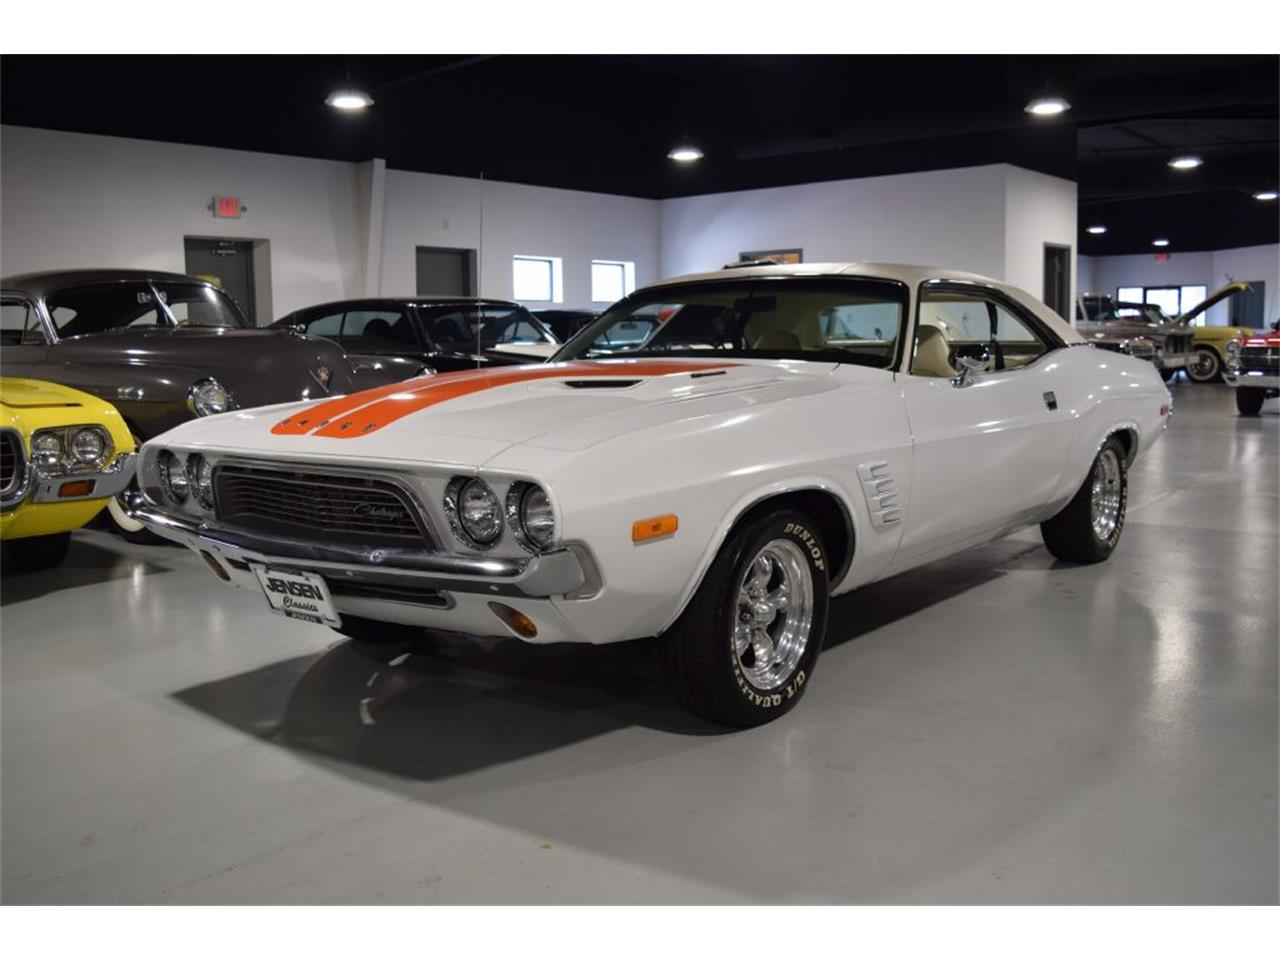 for sale 1974 dodge challenger in sioux city, iowa cars - sioux city, ia at geebo